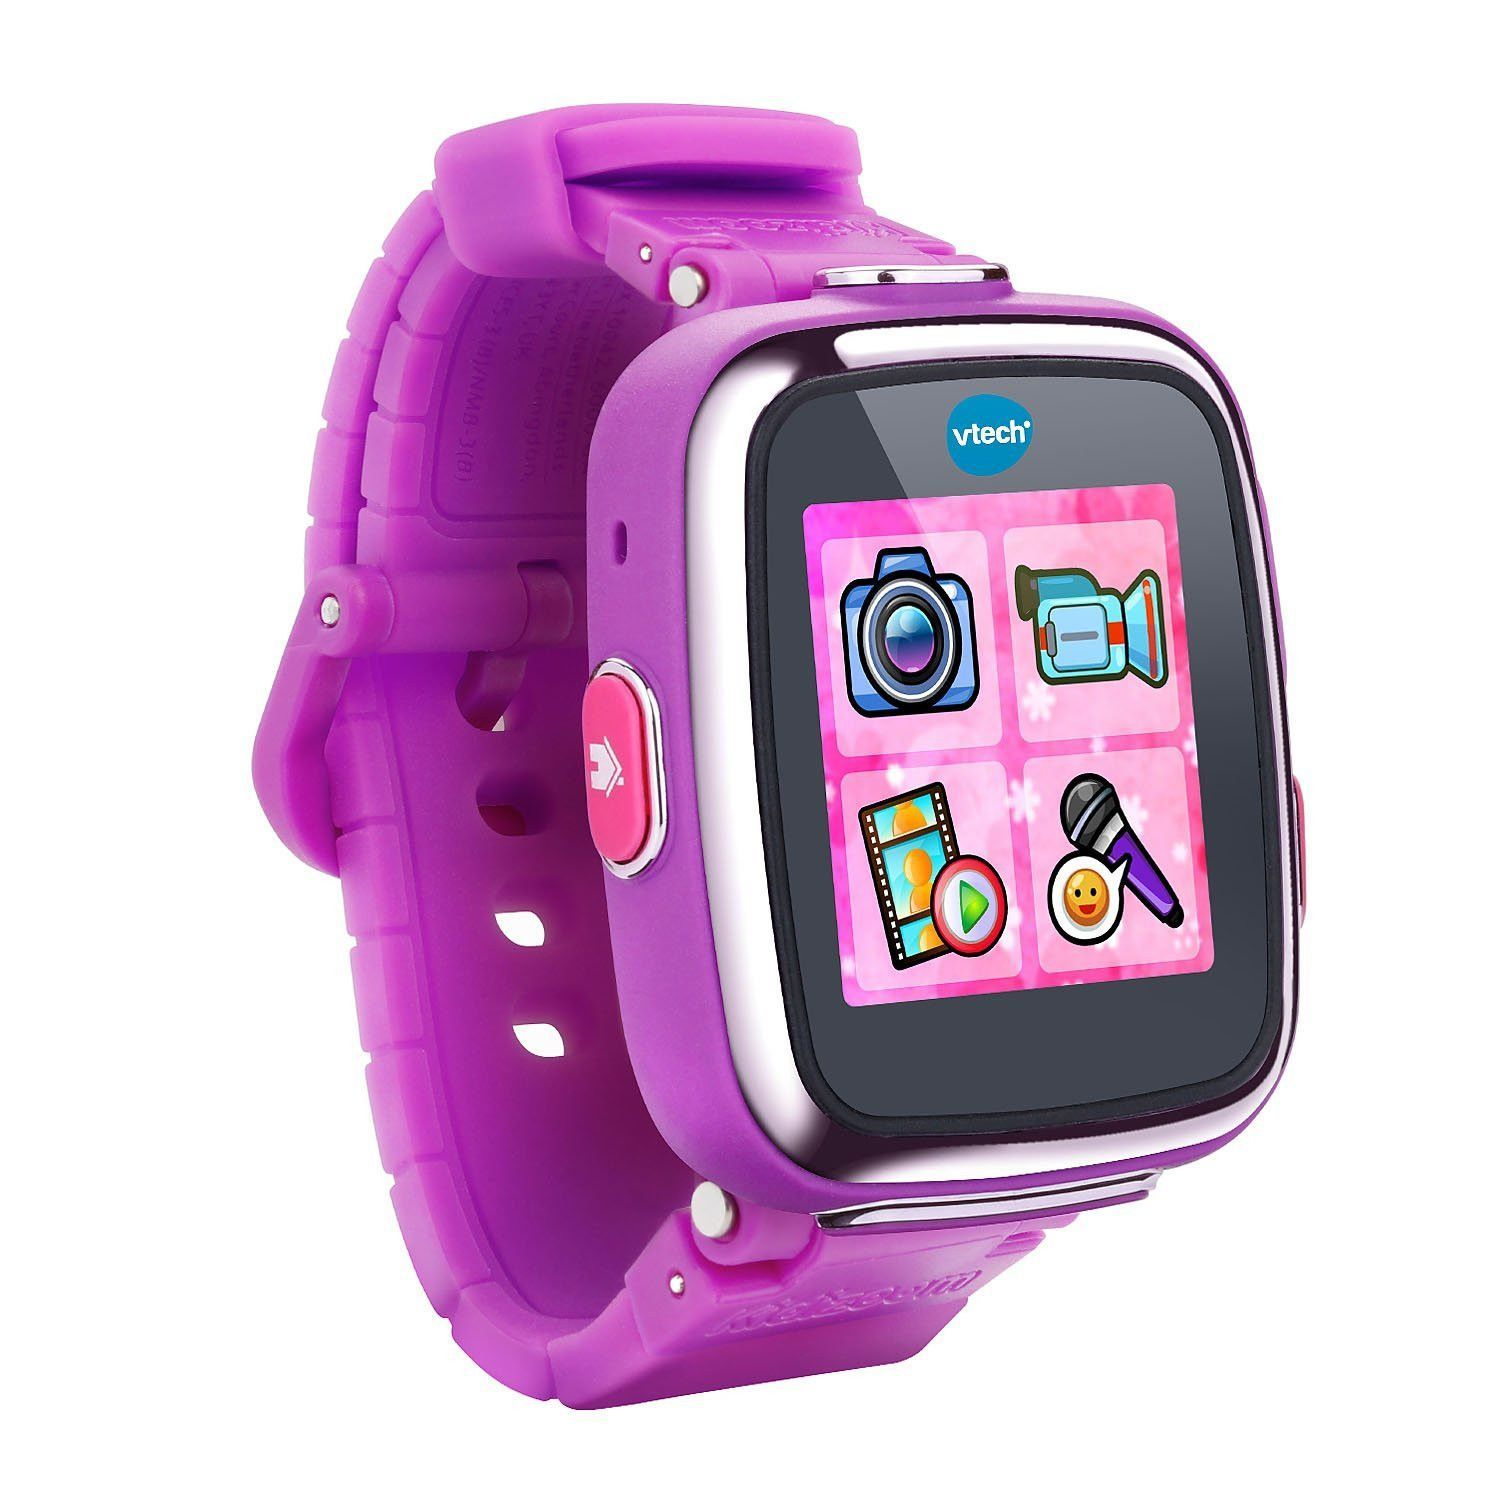 Vtech 80 171650 Kidizoom Smartwatch Dx Vivid Violet 2nd Generation Snap Circuits Sound Light Combo By Elenco On Barstons Childs Play The Is An Even Smarter Watch For Kids With More Fun Games And Activities Features 3 5